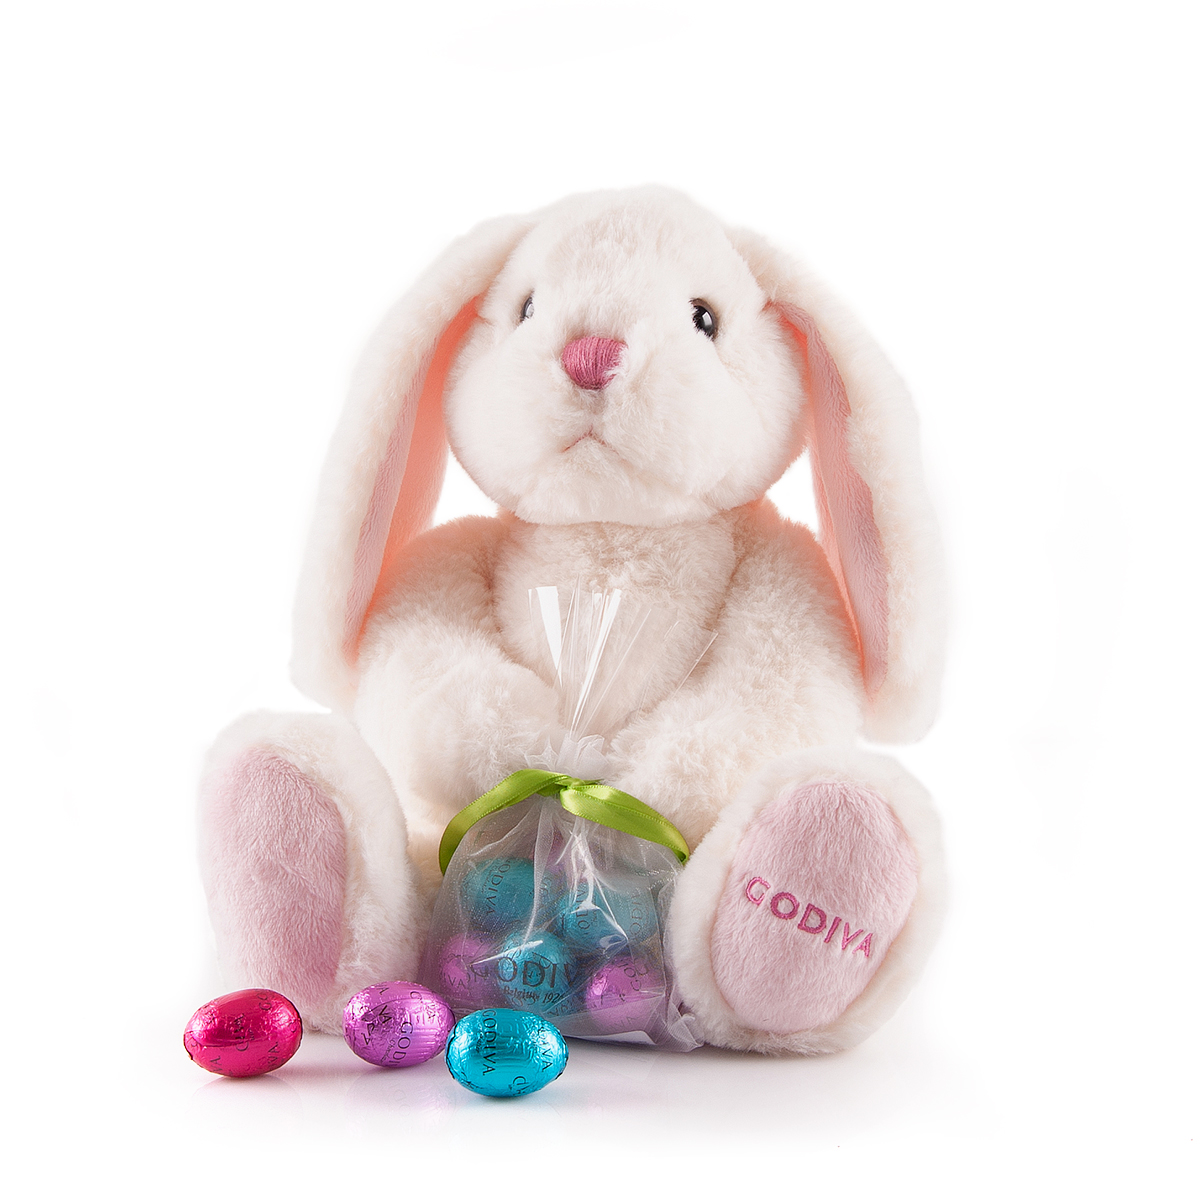 A lovable fluffy Easter bunny with 8 milk and white Godiva chocolate eggs is an Easter gift to be cherished.